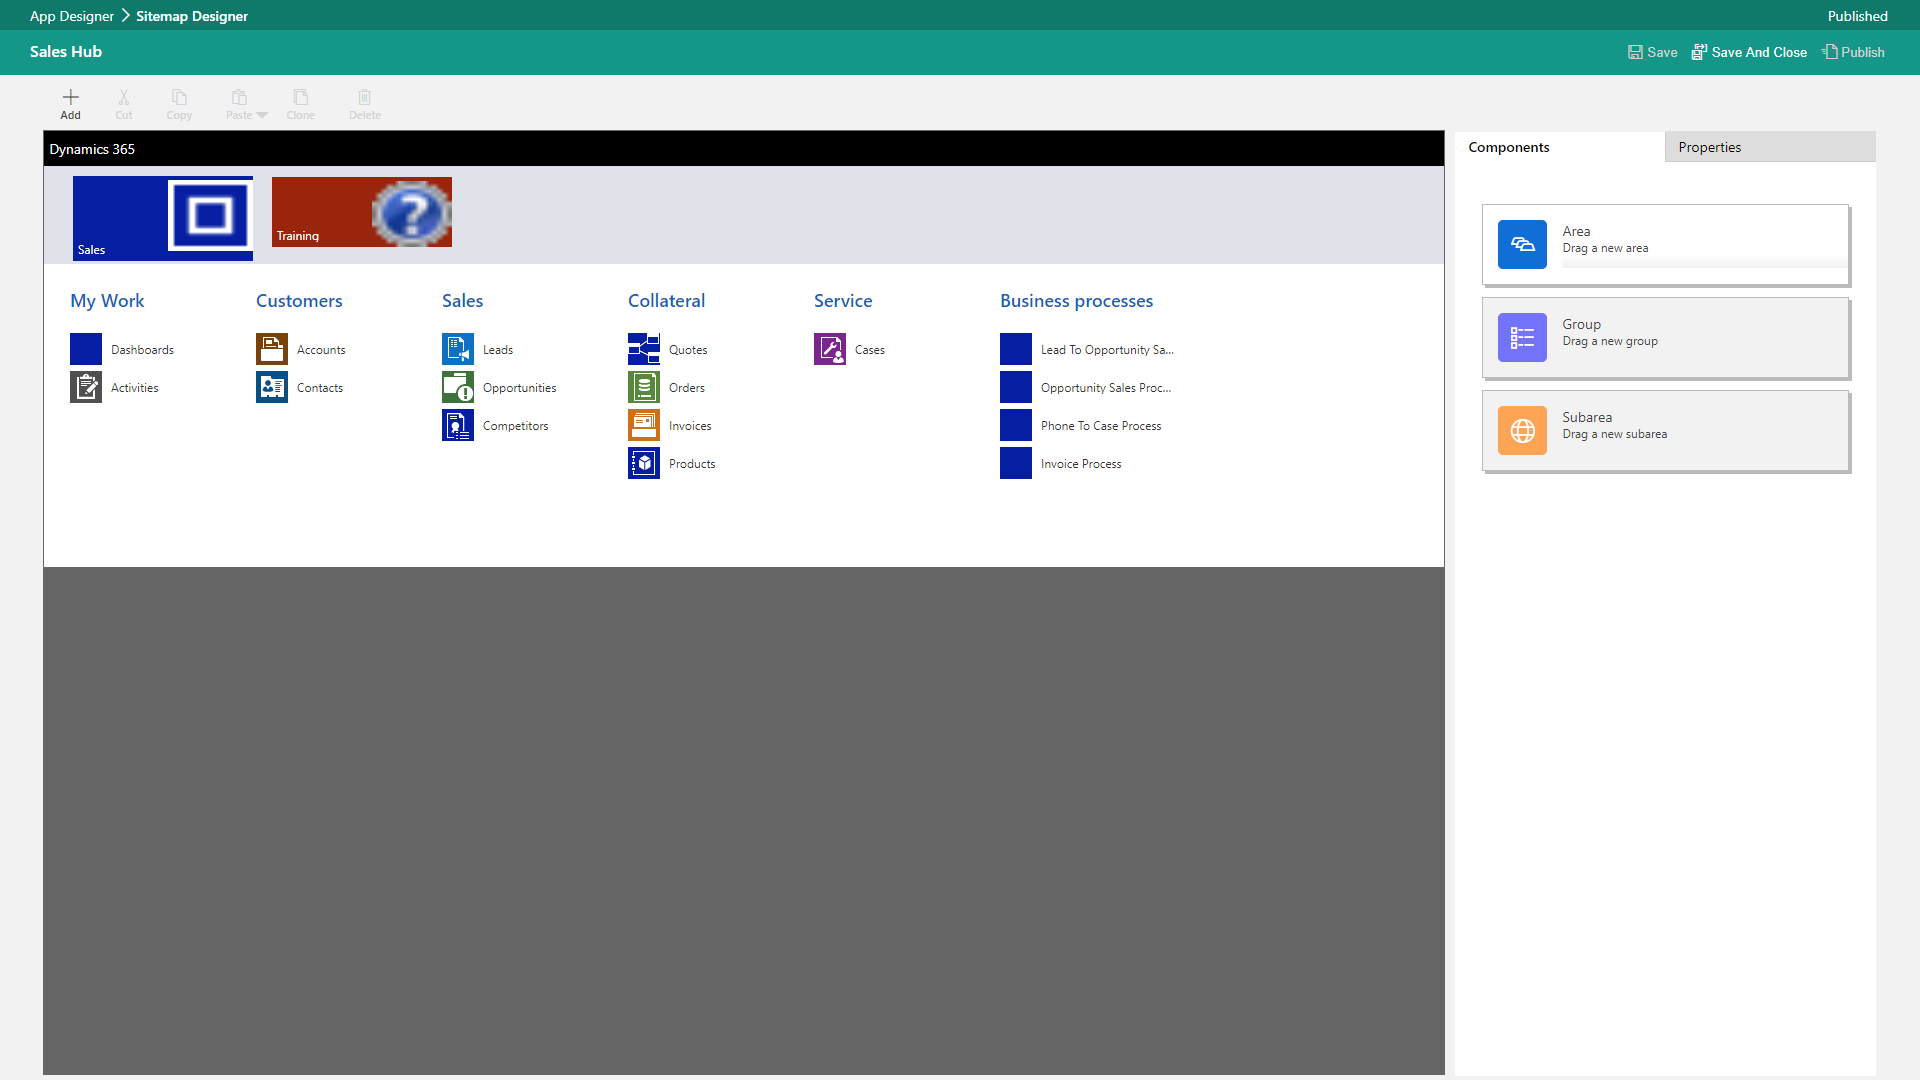 create app with entities, dashboards, and business processes